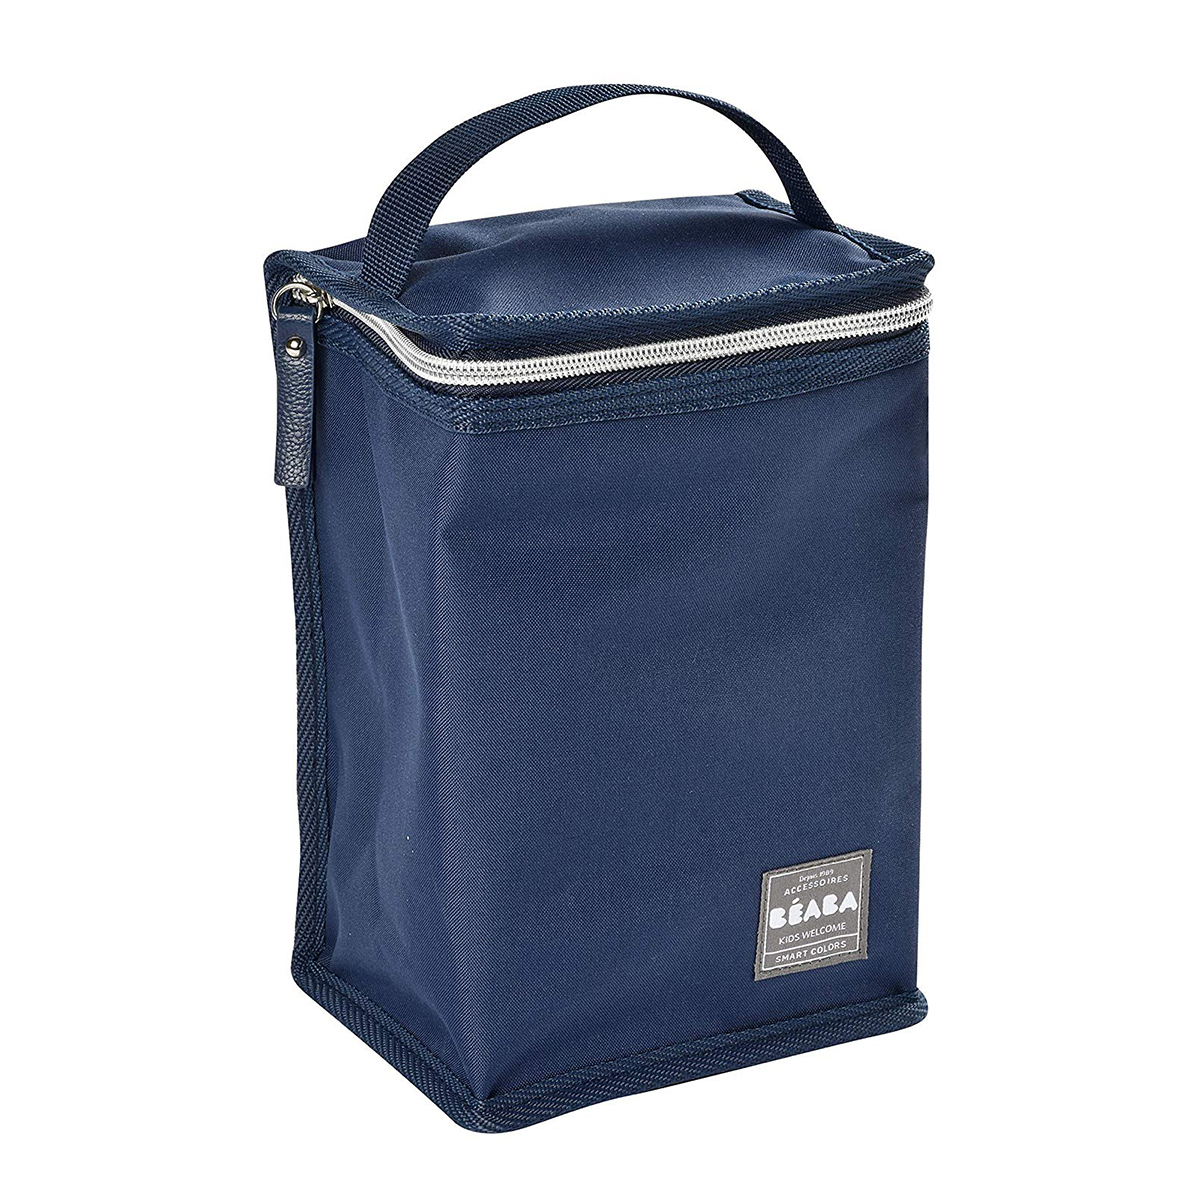 Sac isotherme Pochette Repas Isotherme - Blue/Silver